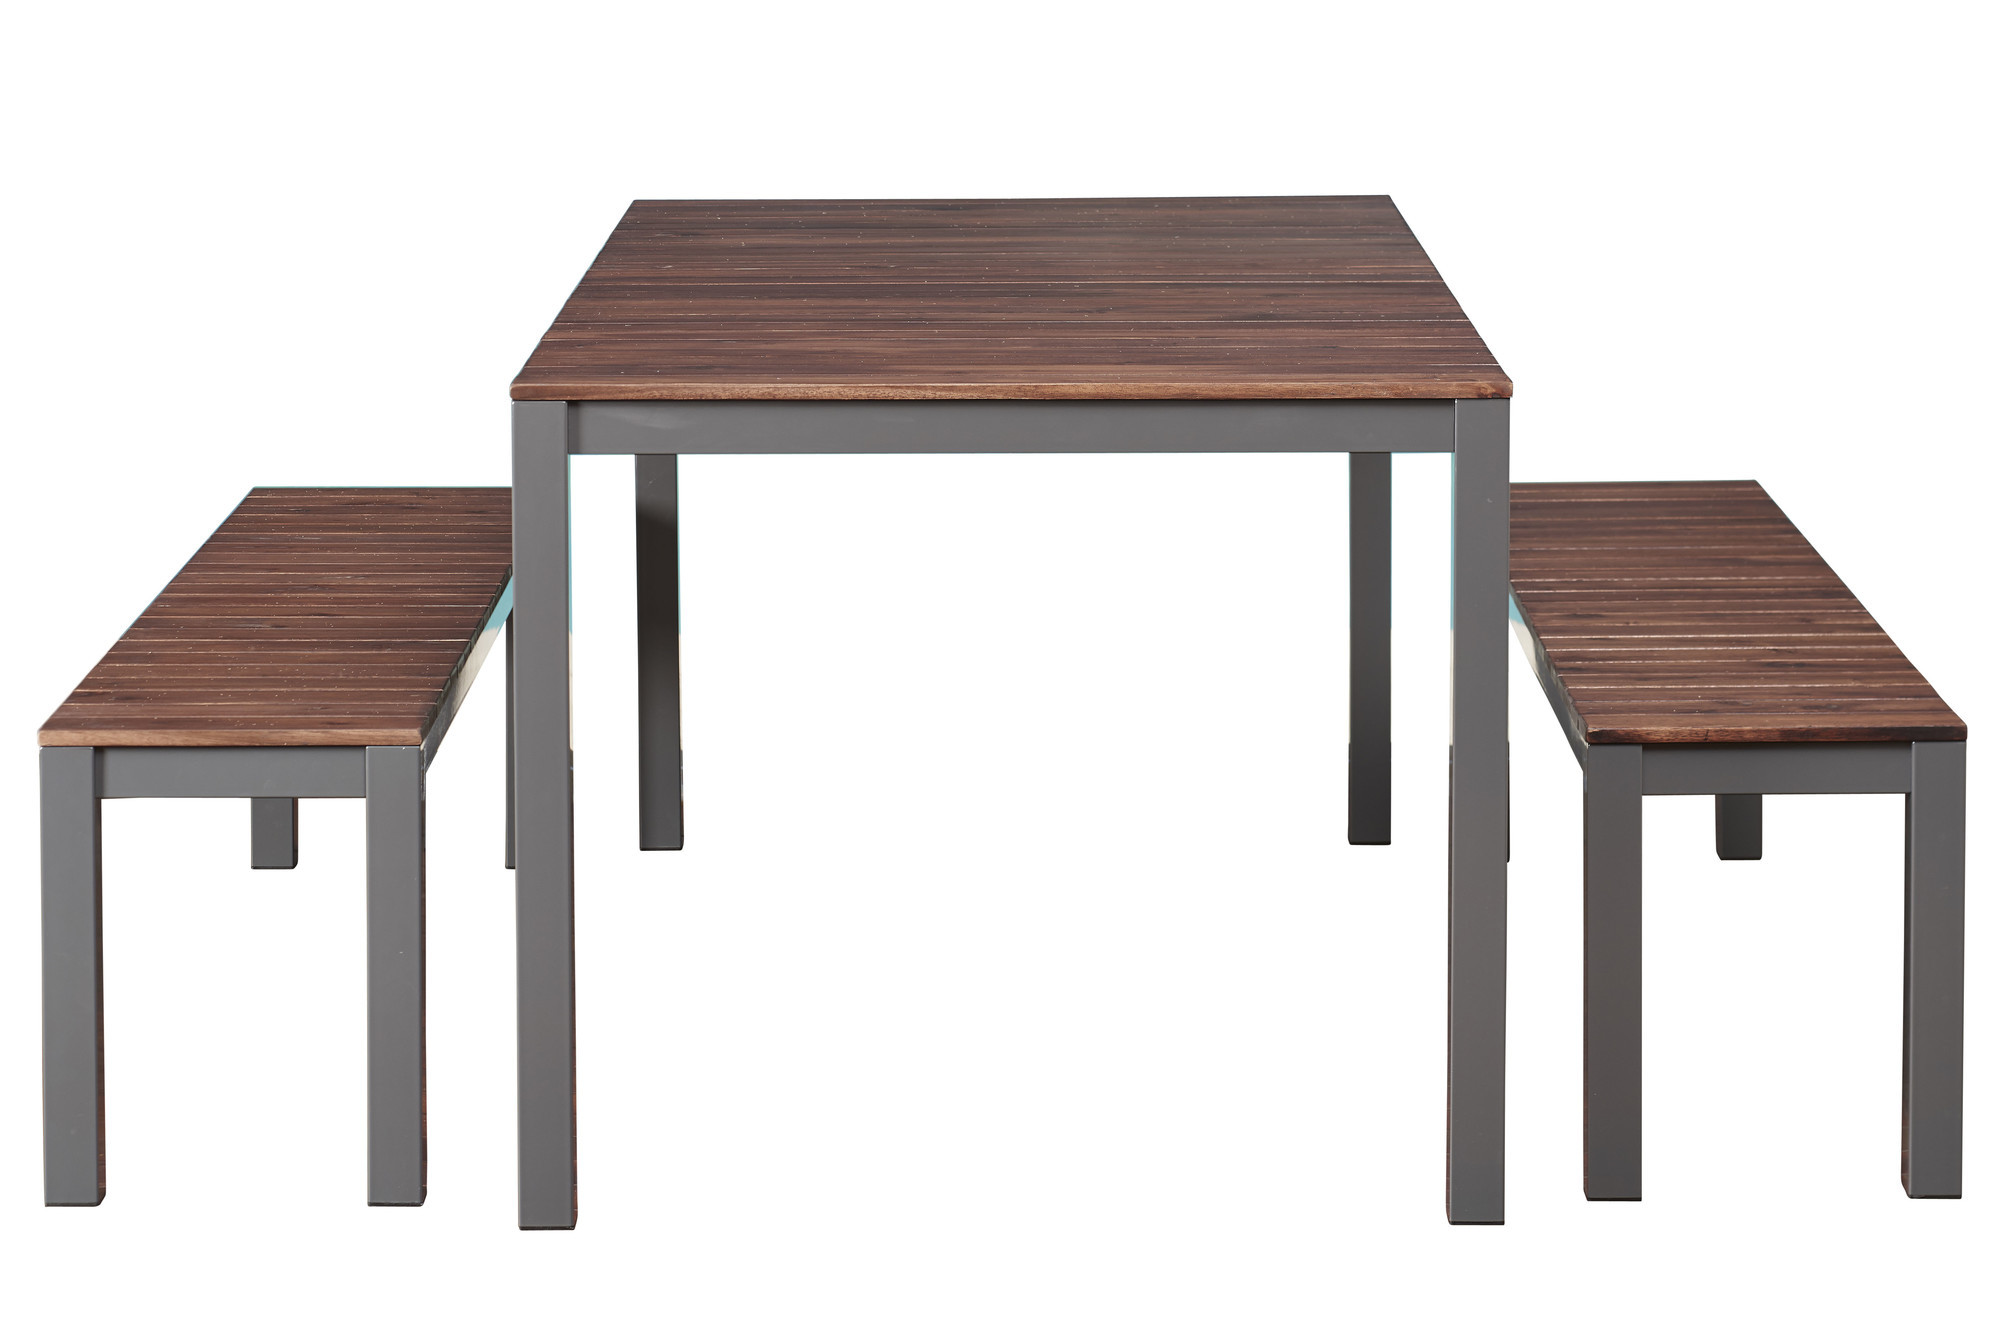 NEW Corsica 3 Piece Timber Outdoor Dining Set : 1 from www.ebay.com.au size 2000 x 1333 jpeg 223kB